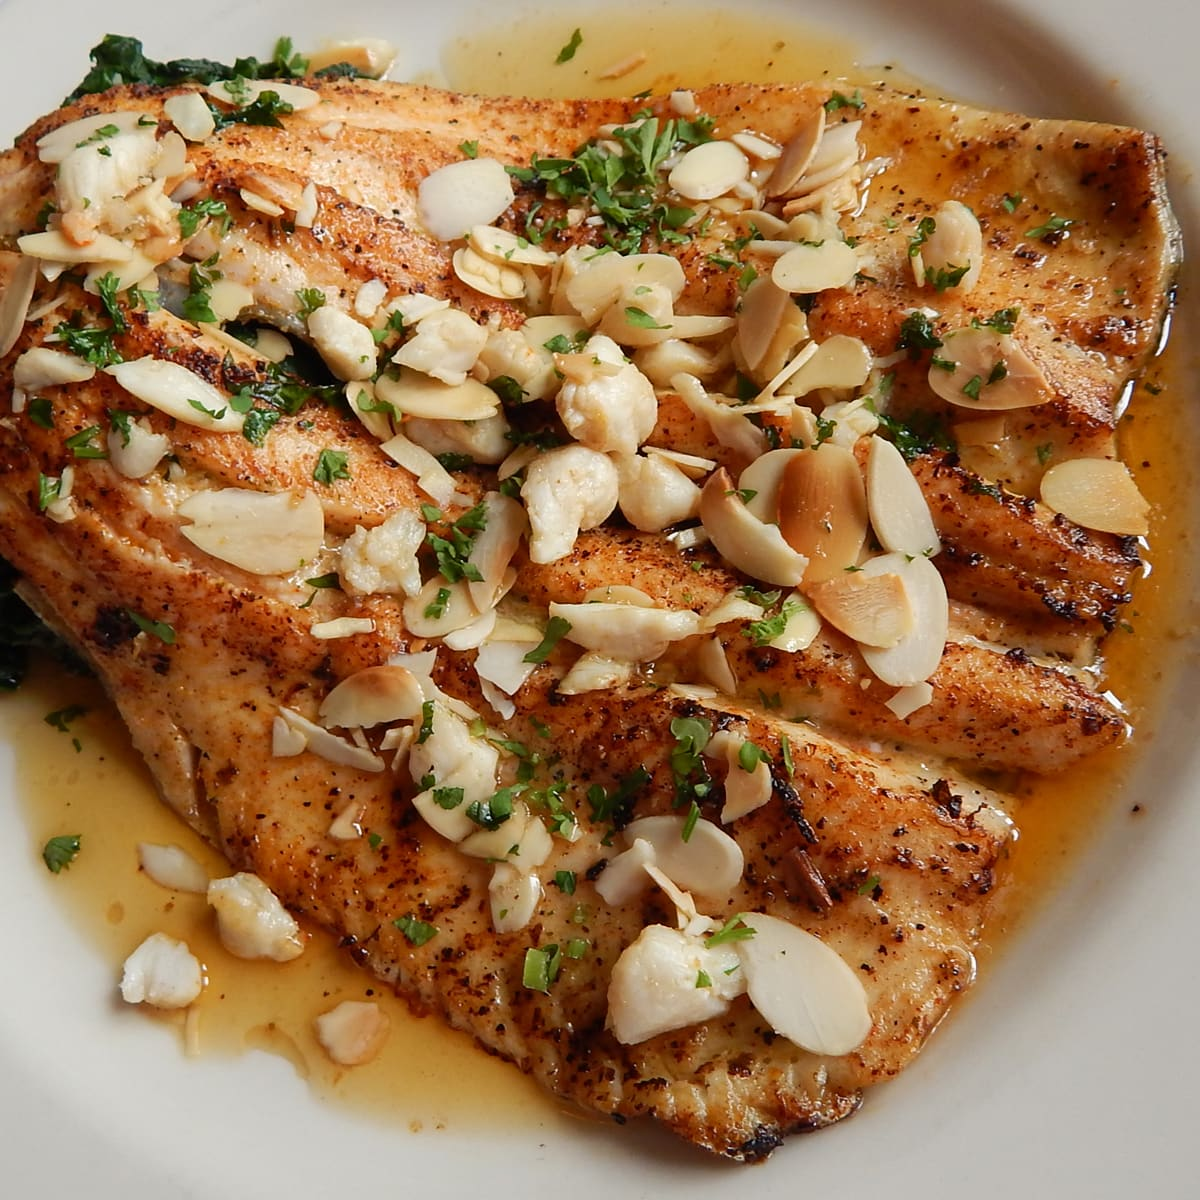 Tony Mandola's Trout Almondine